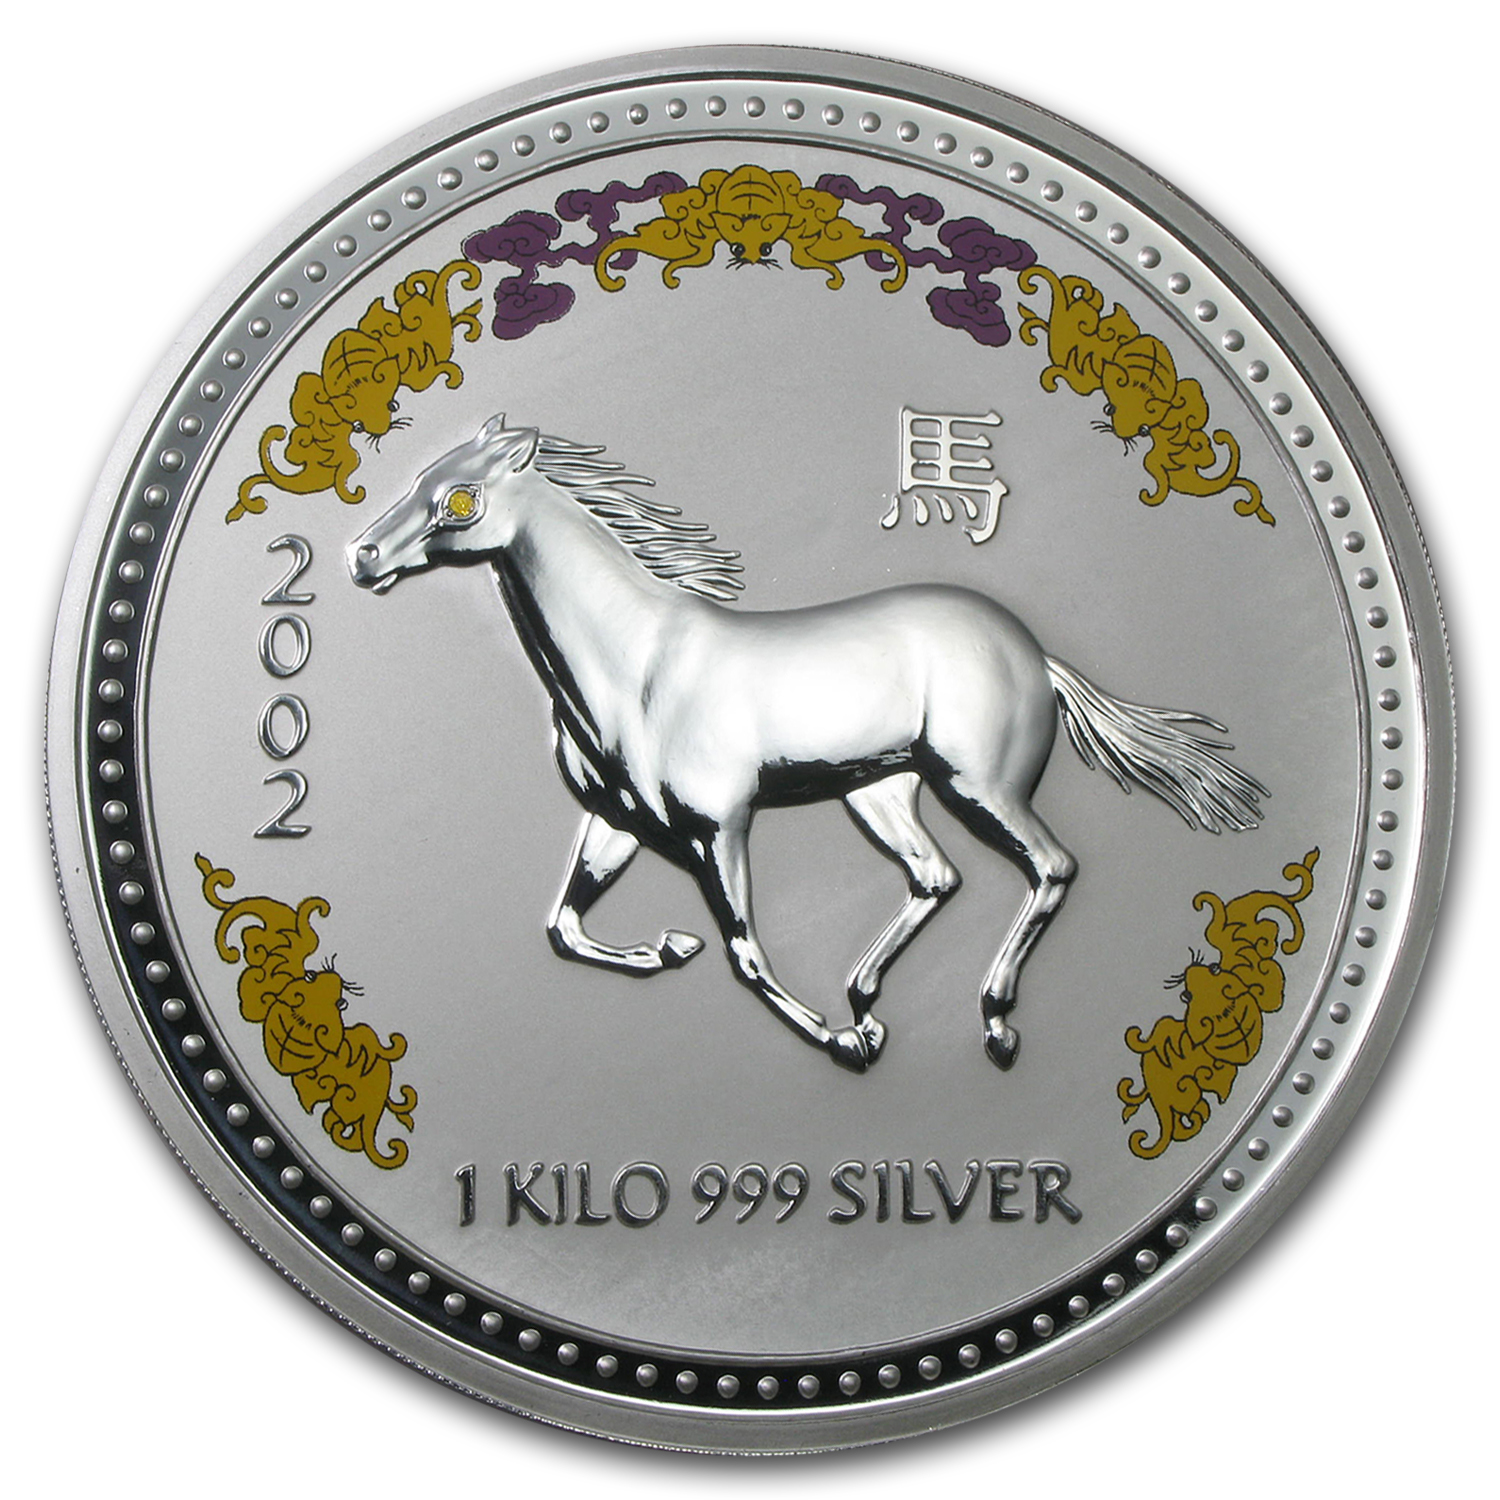 2002 Australia 1 kilo Silver Year of the Horse BU (Diamond Eye)